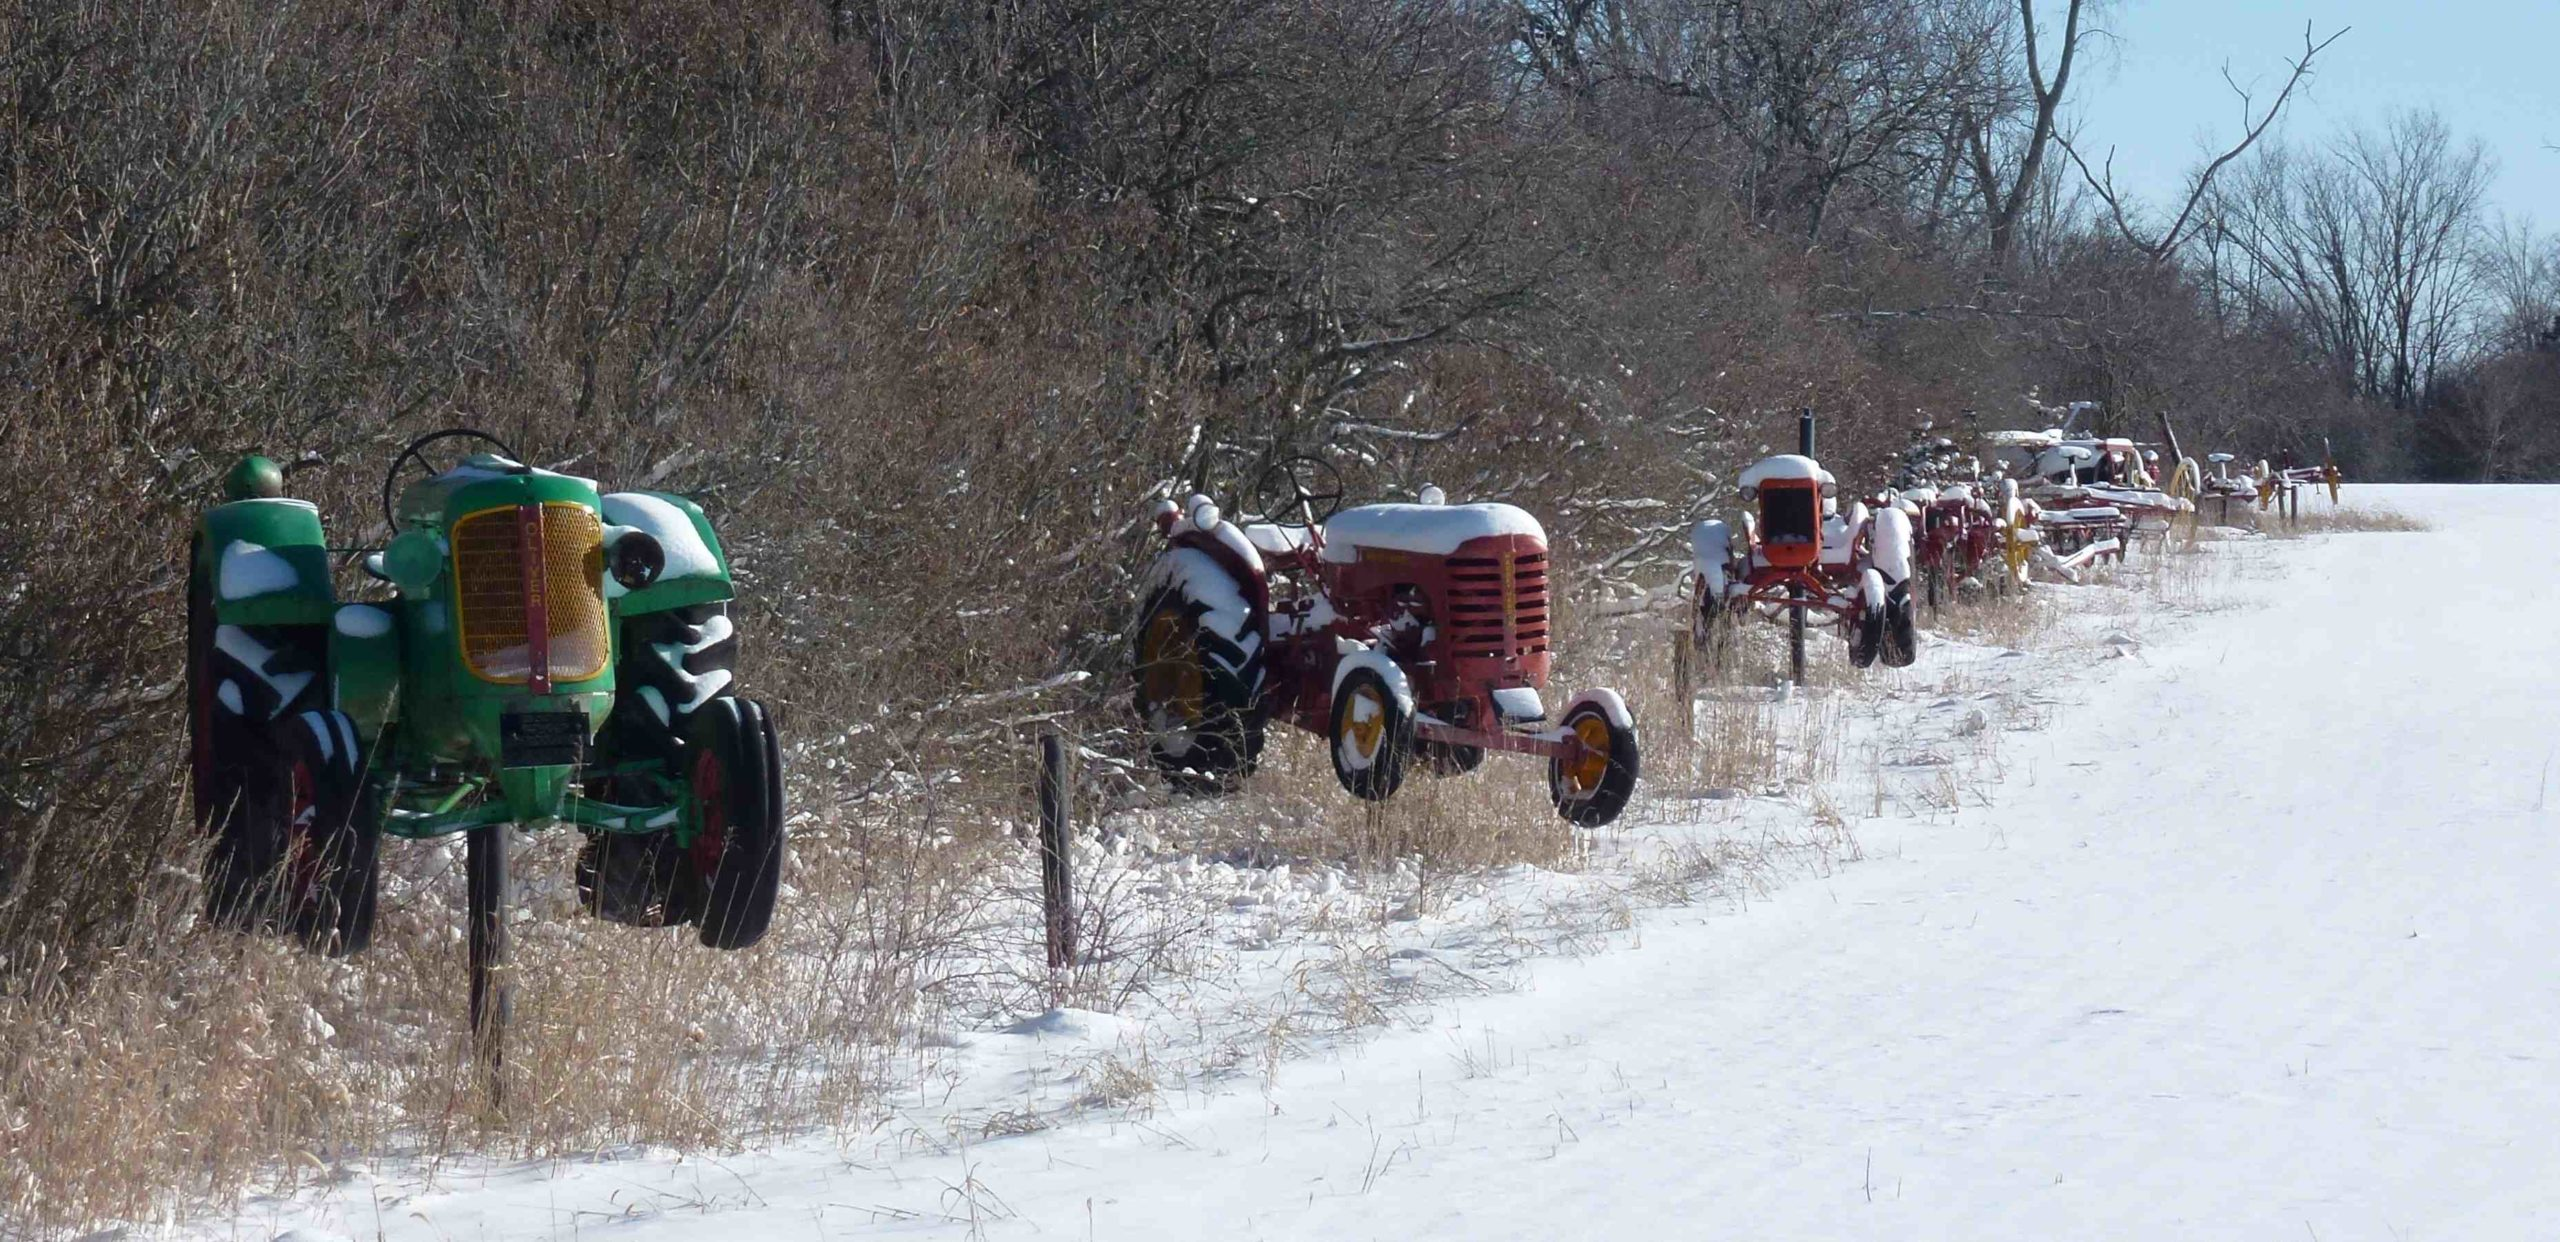 Three snow covered vintage tractors displayed along a snowy road. Bare trees in background.